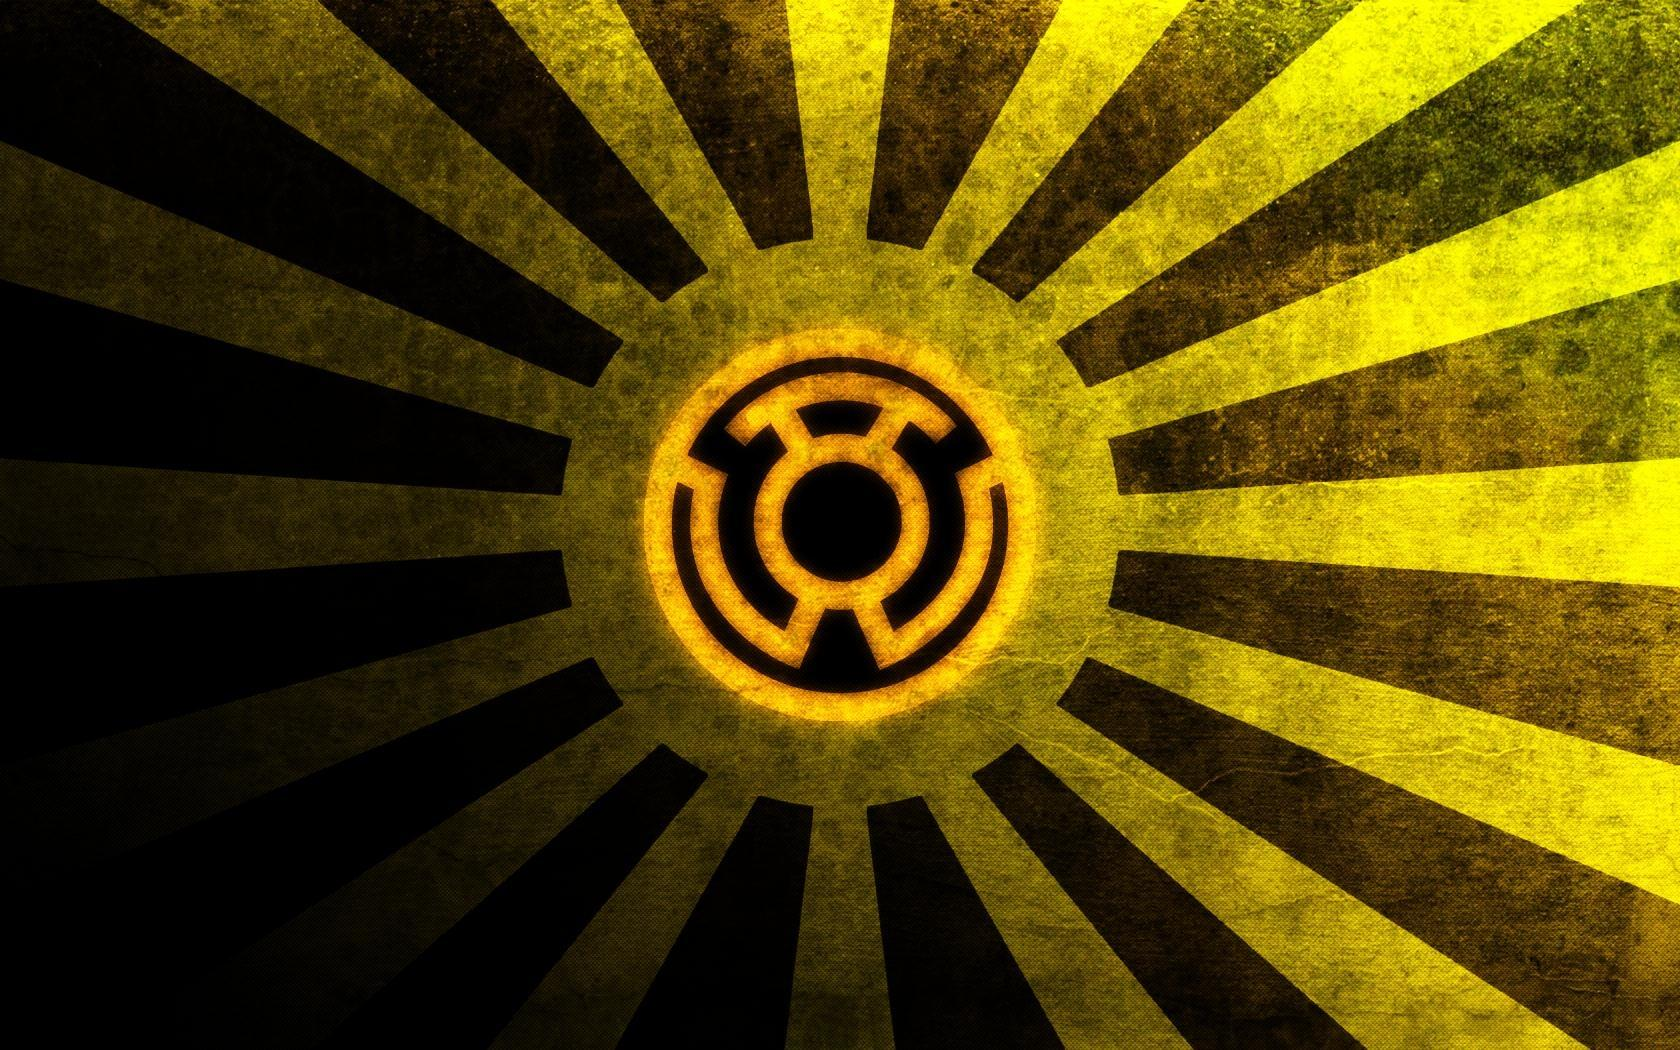 Sinestro Corps wallpapers HD quality